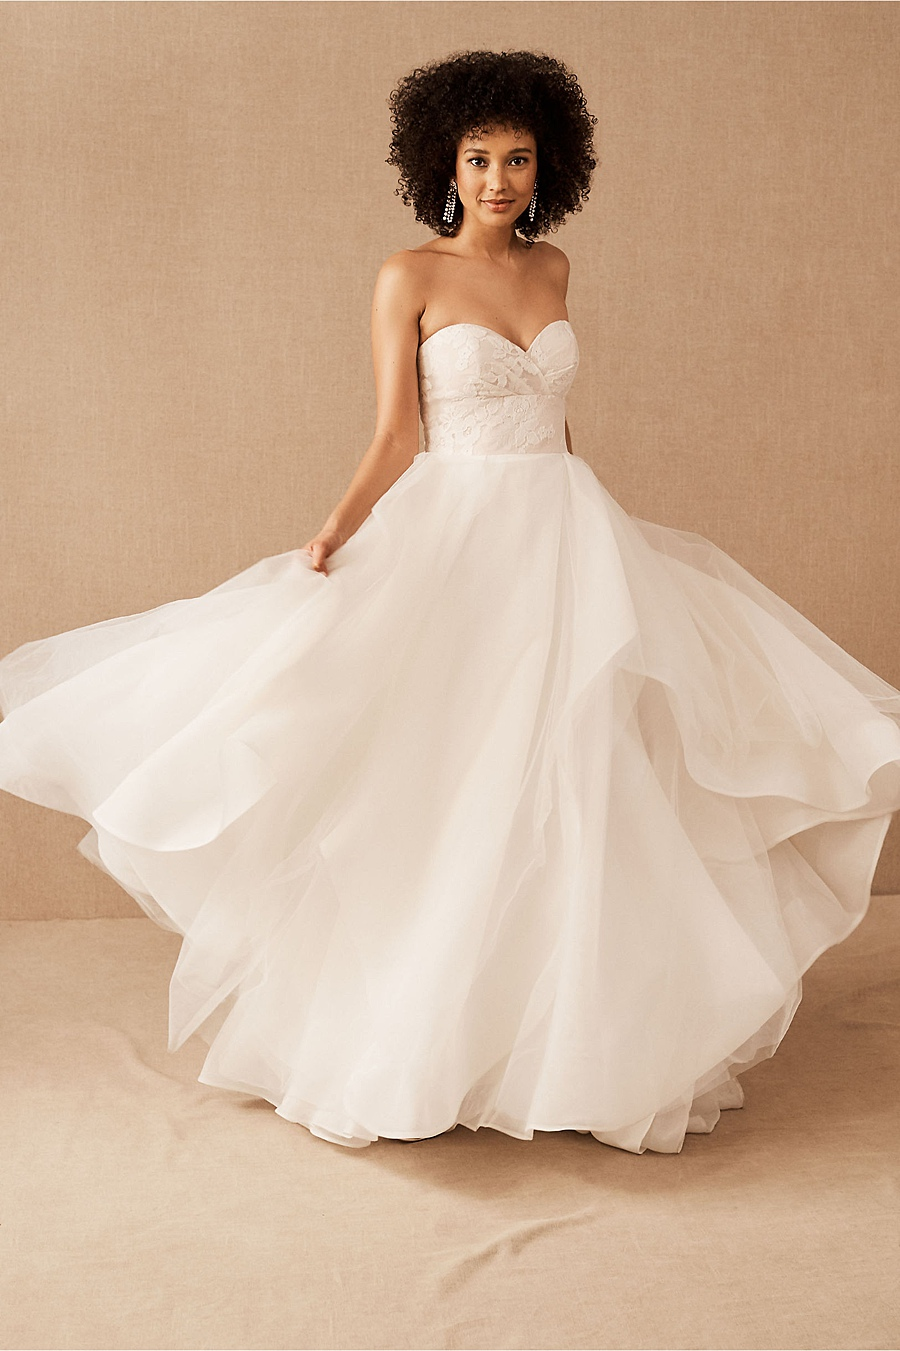 how to buy a cheap and legit wedding dress online without getting scammed wedding dress online destination wedding dresses 19